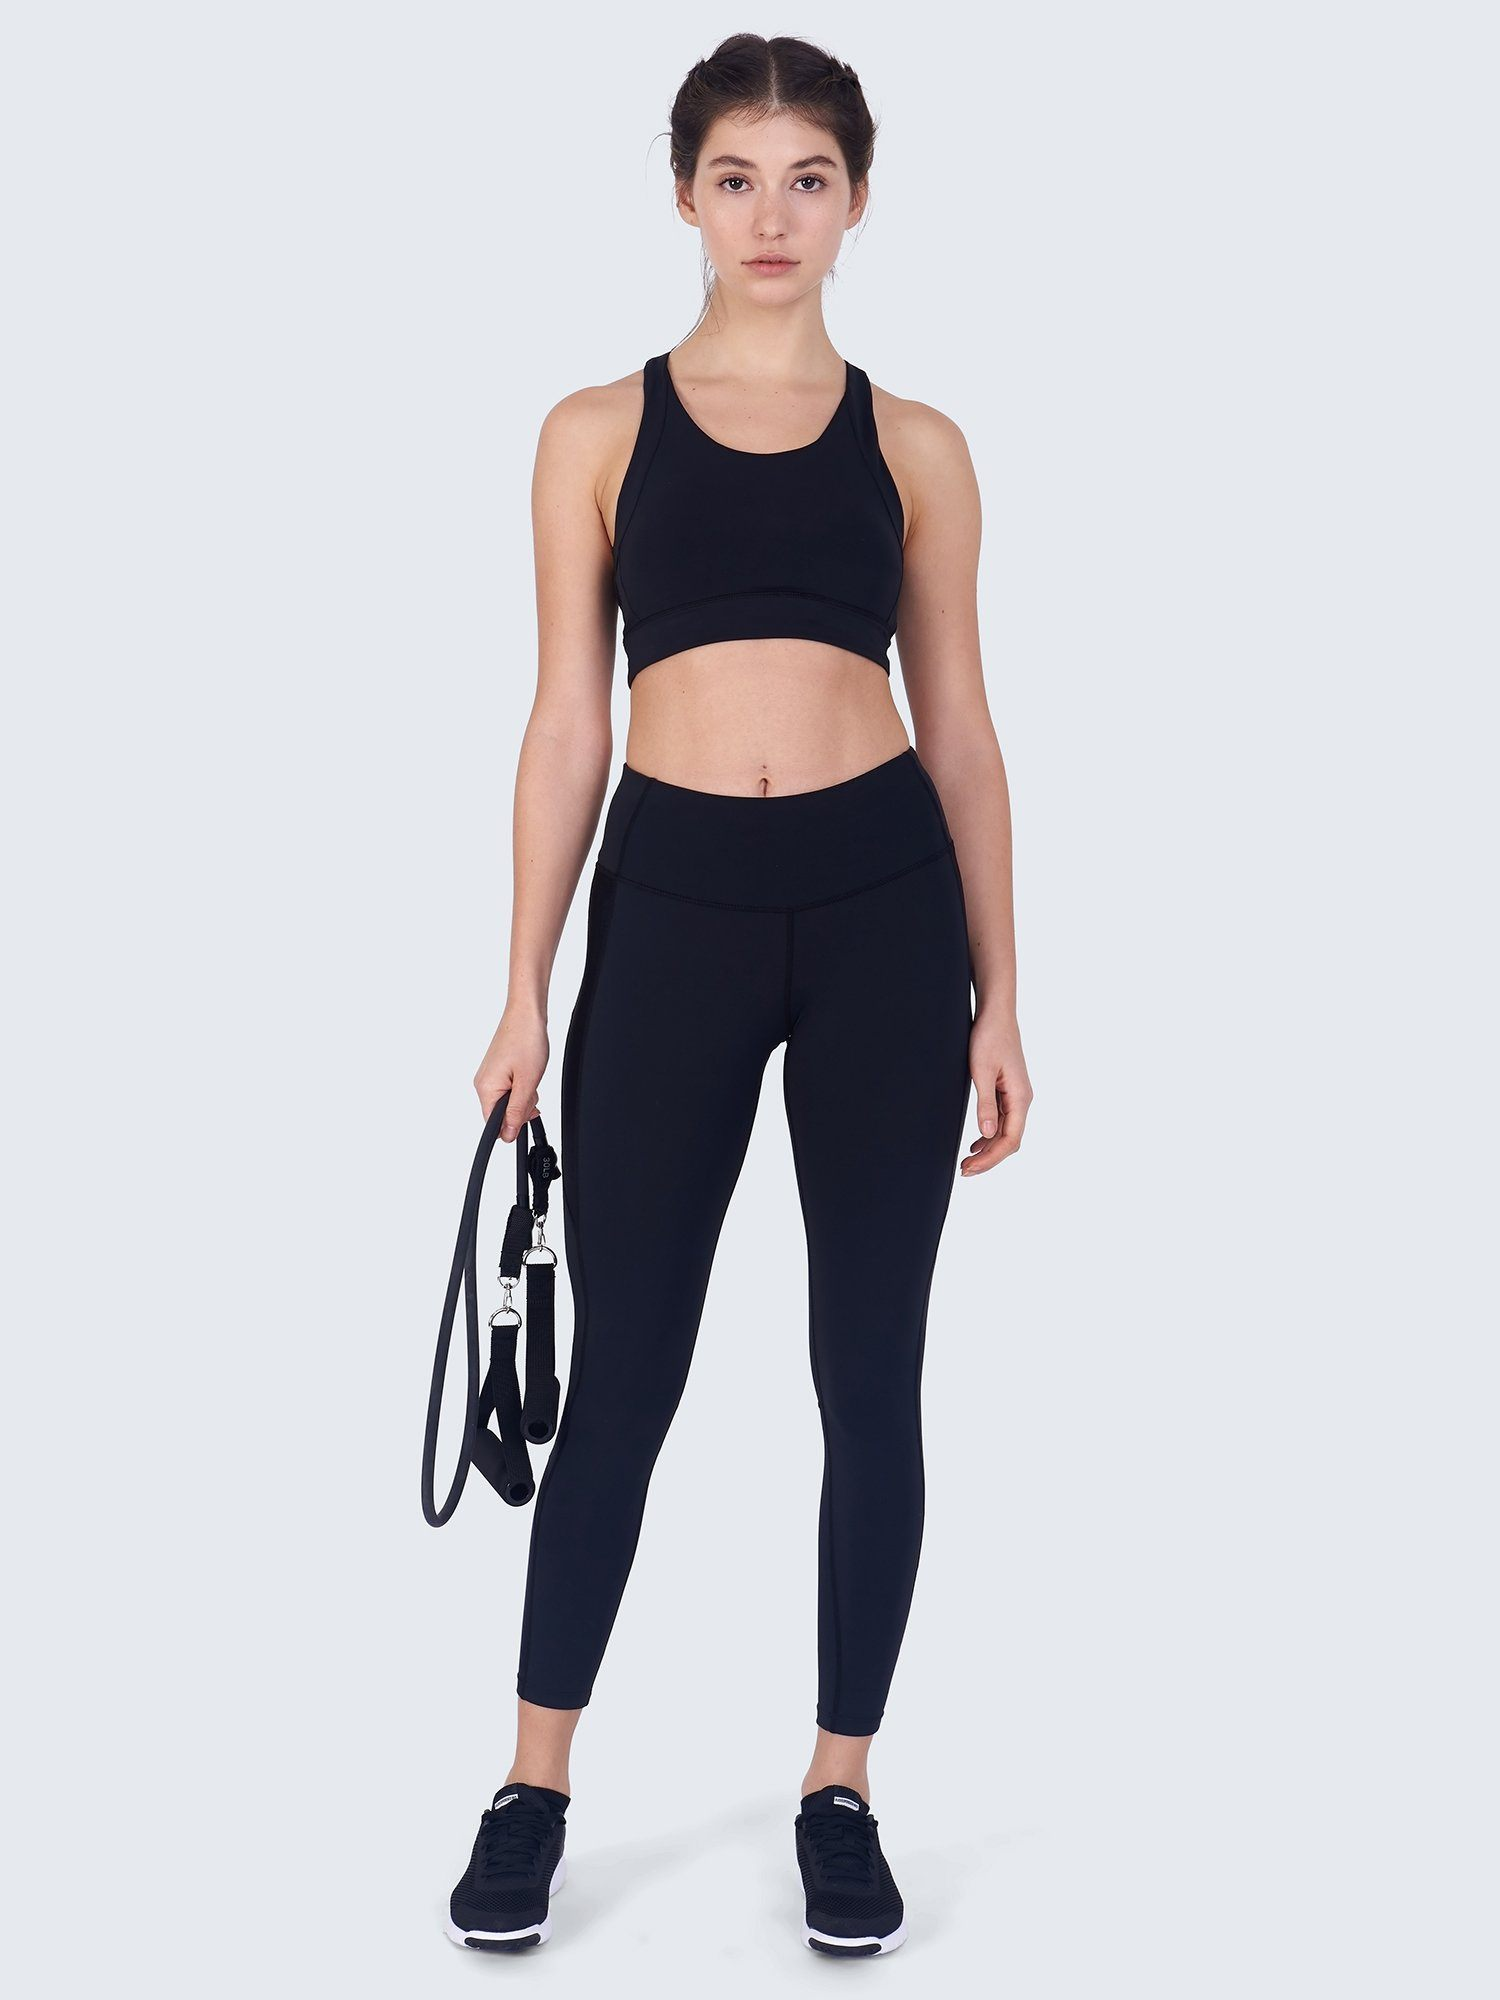 TCA Tech Pack: Relentless Sports Bra + 7/8 Leggings